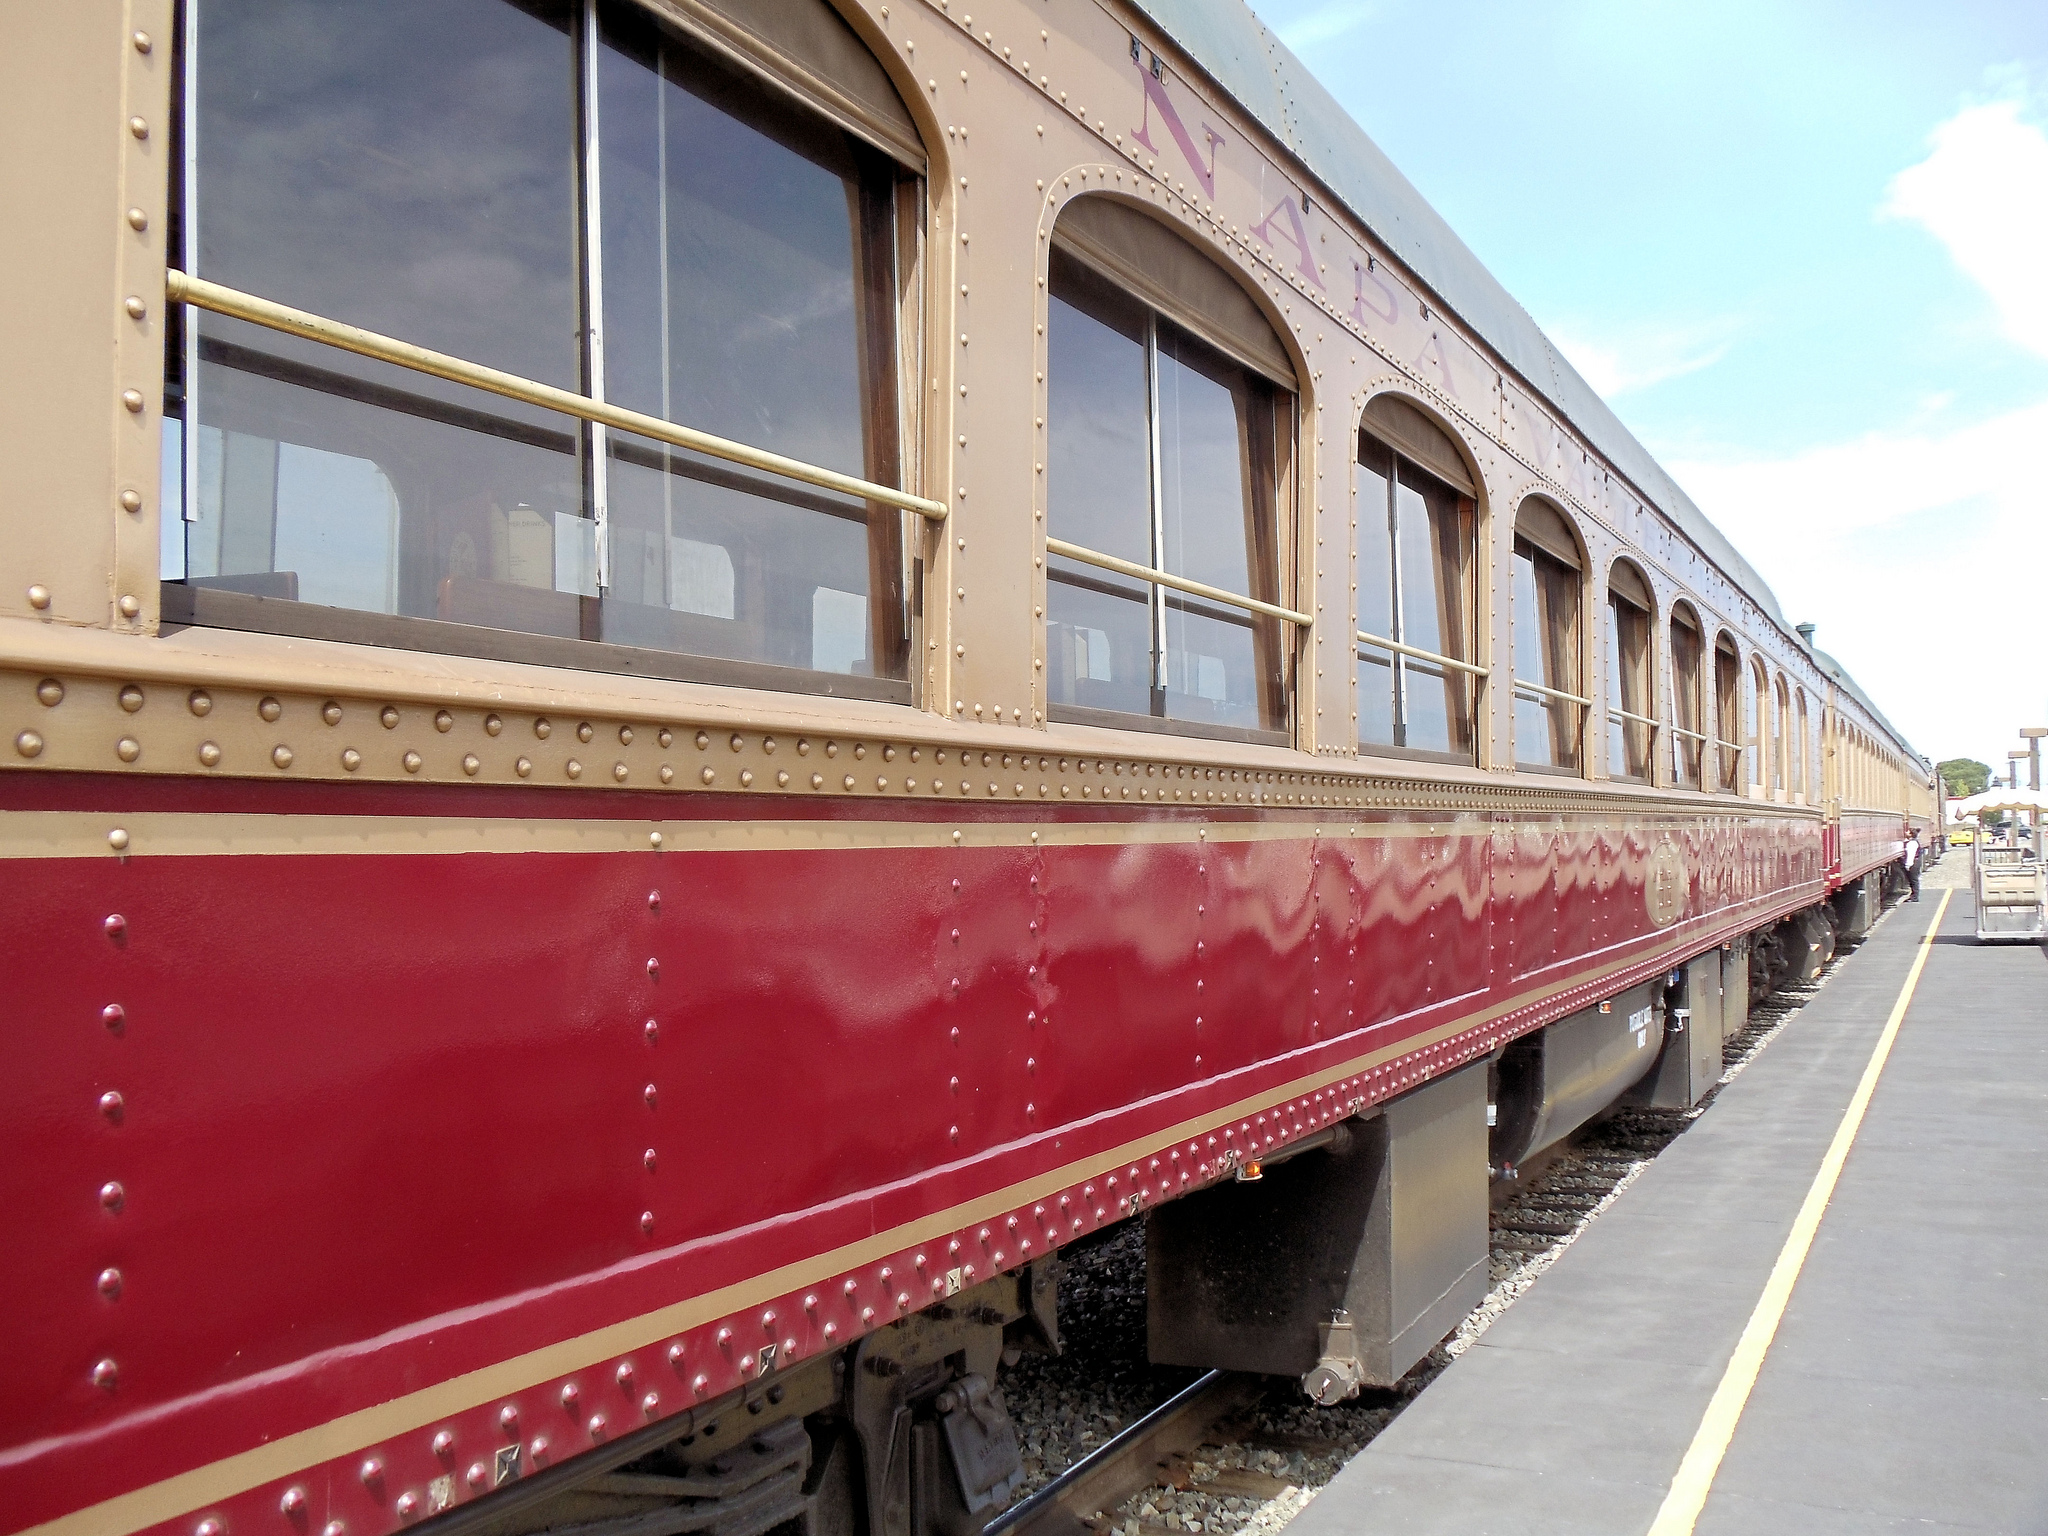 Napa Valley Wine Train Facing $5M Lawsuit From Black Women's Book Club